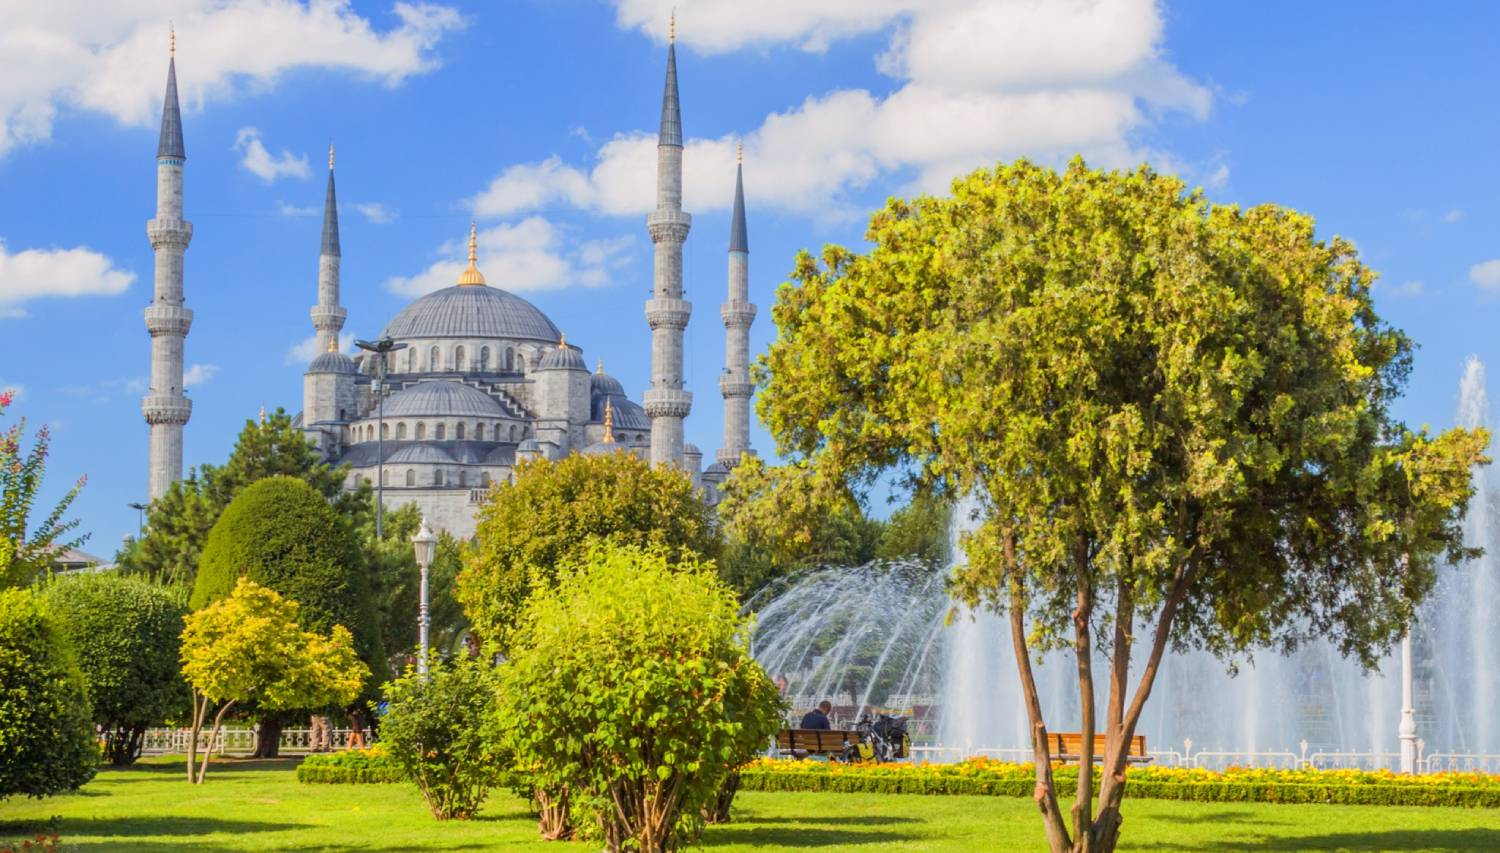 Blue Mosque (Sultan Ahmet Camii) - Things To Do In Istanbul